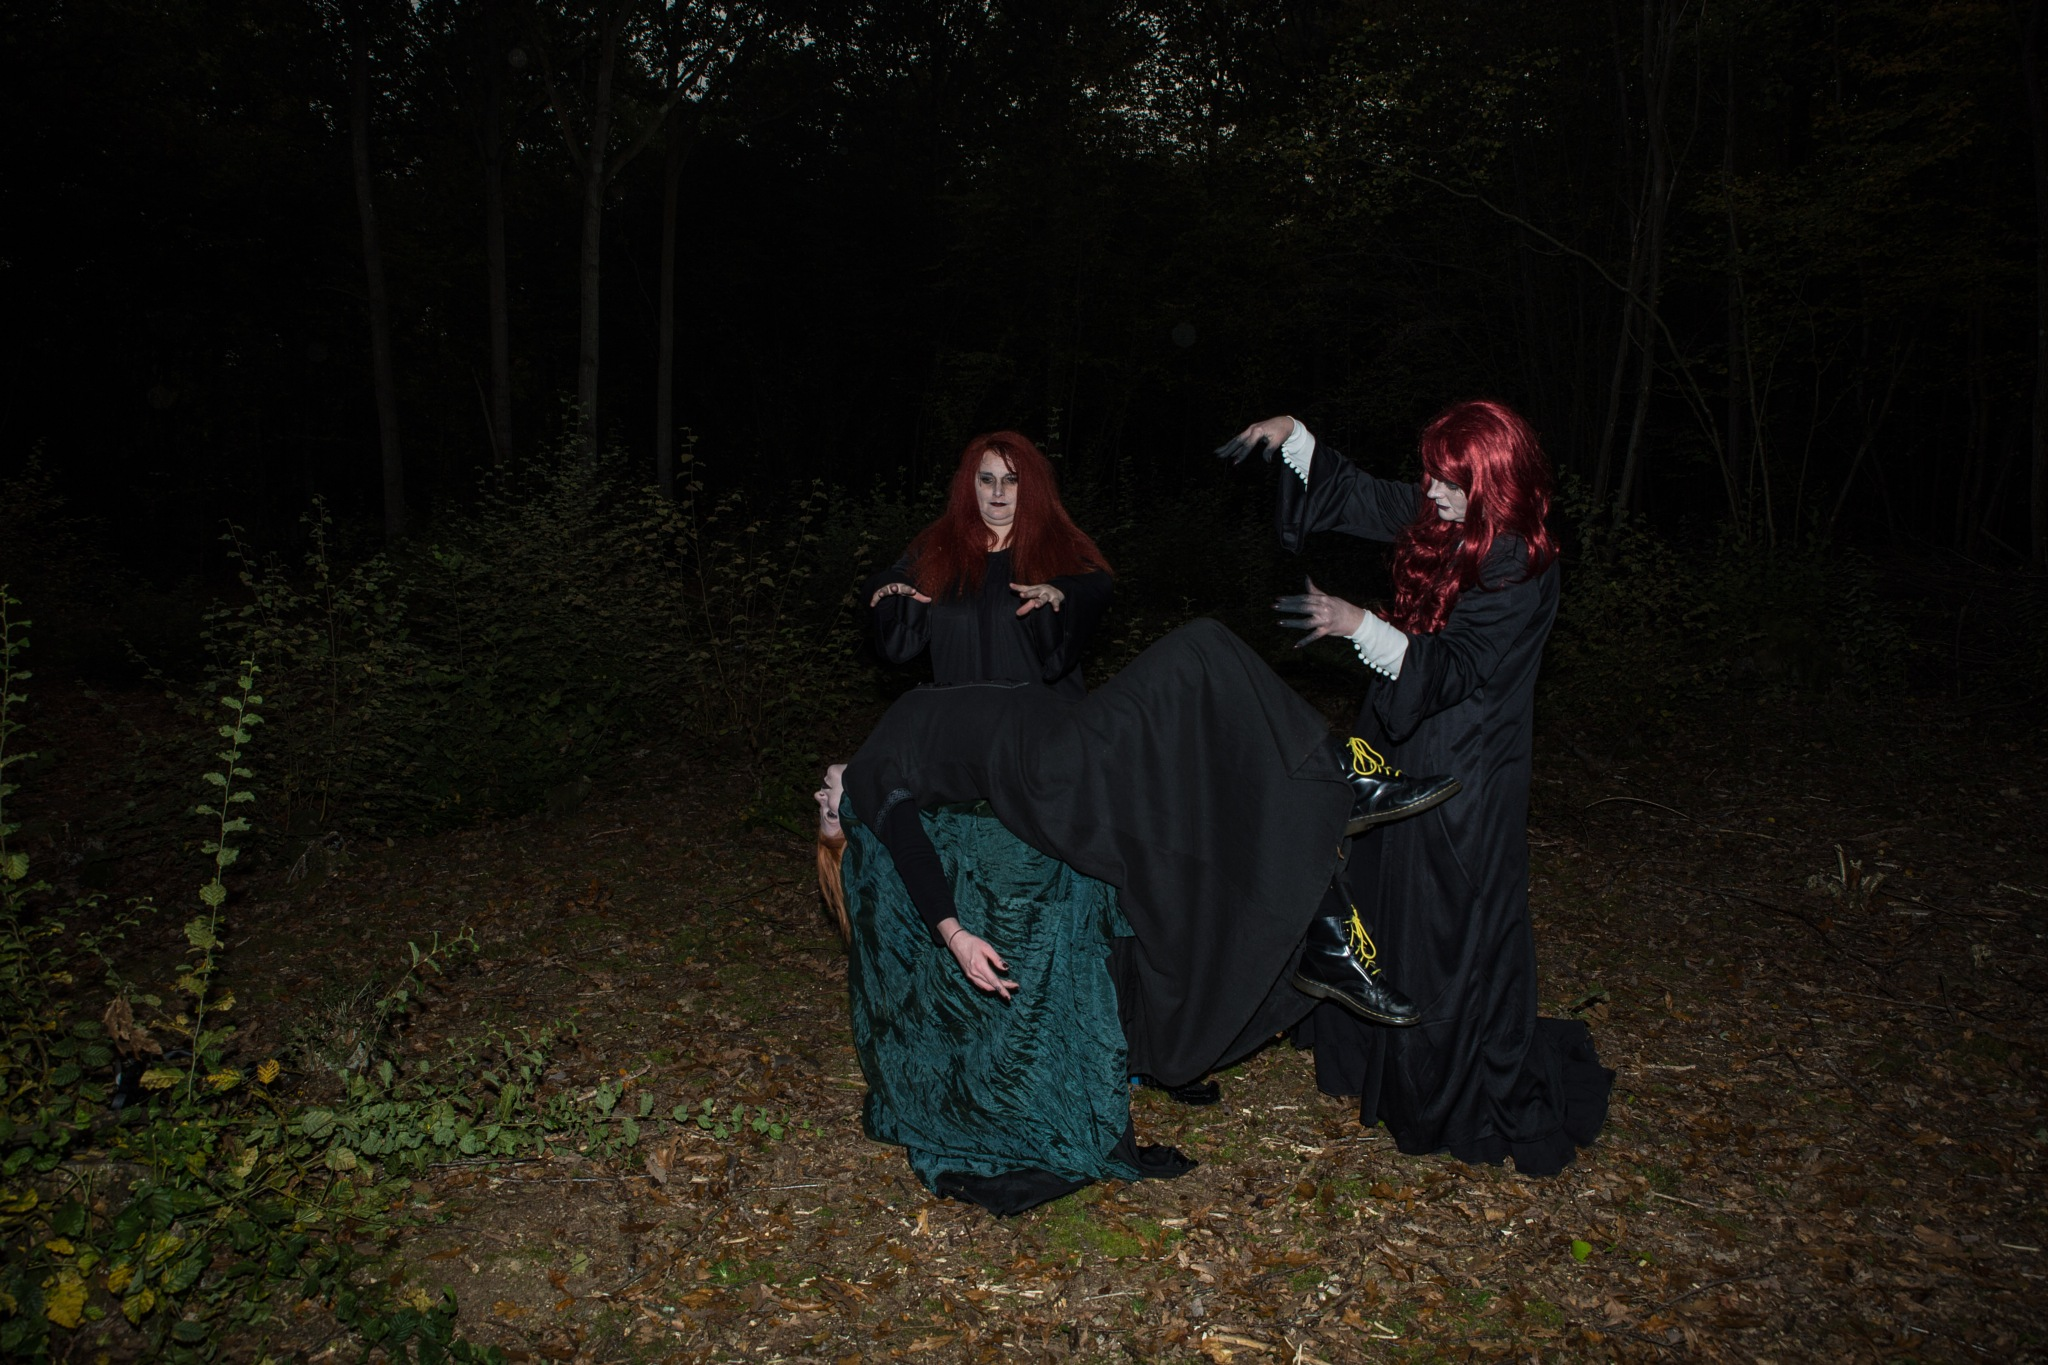 The Coven by Photographer Gino Cinganelli